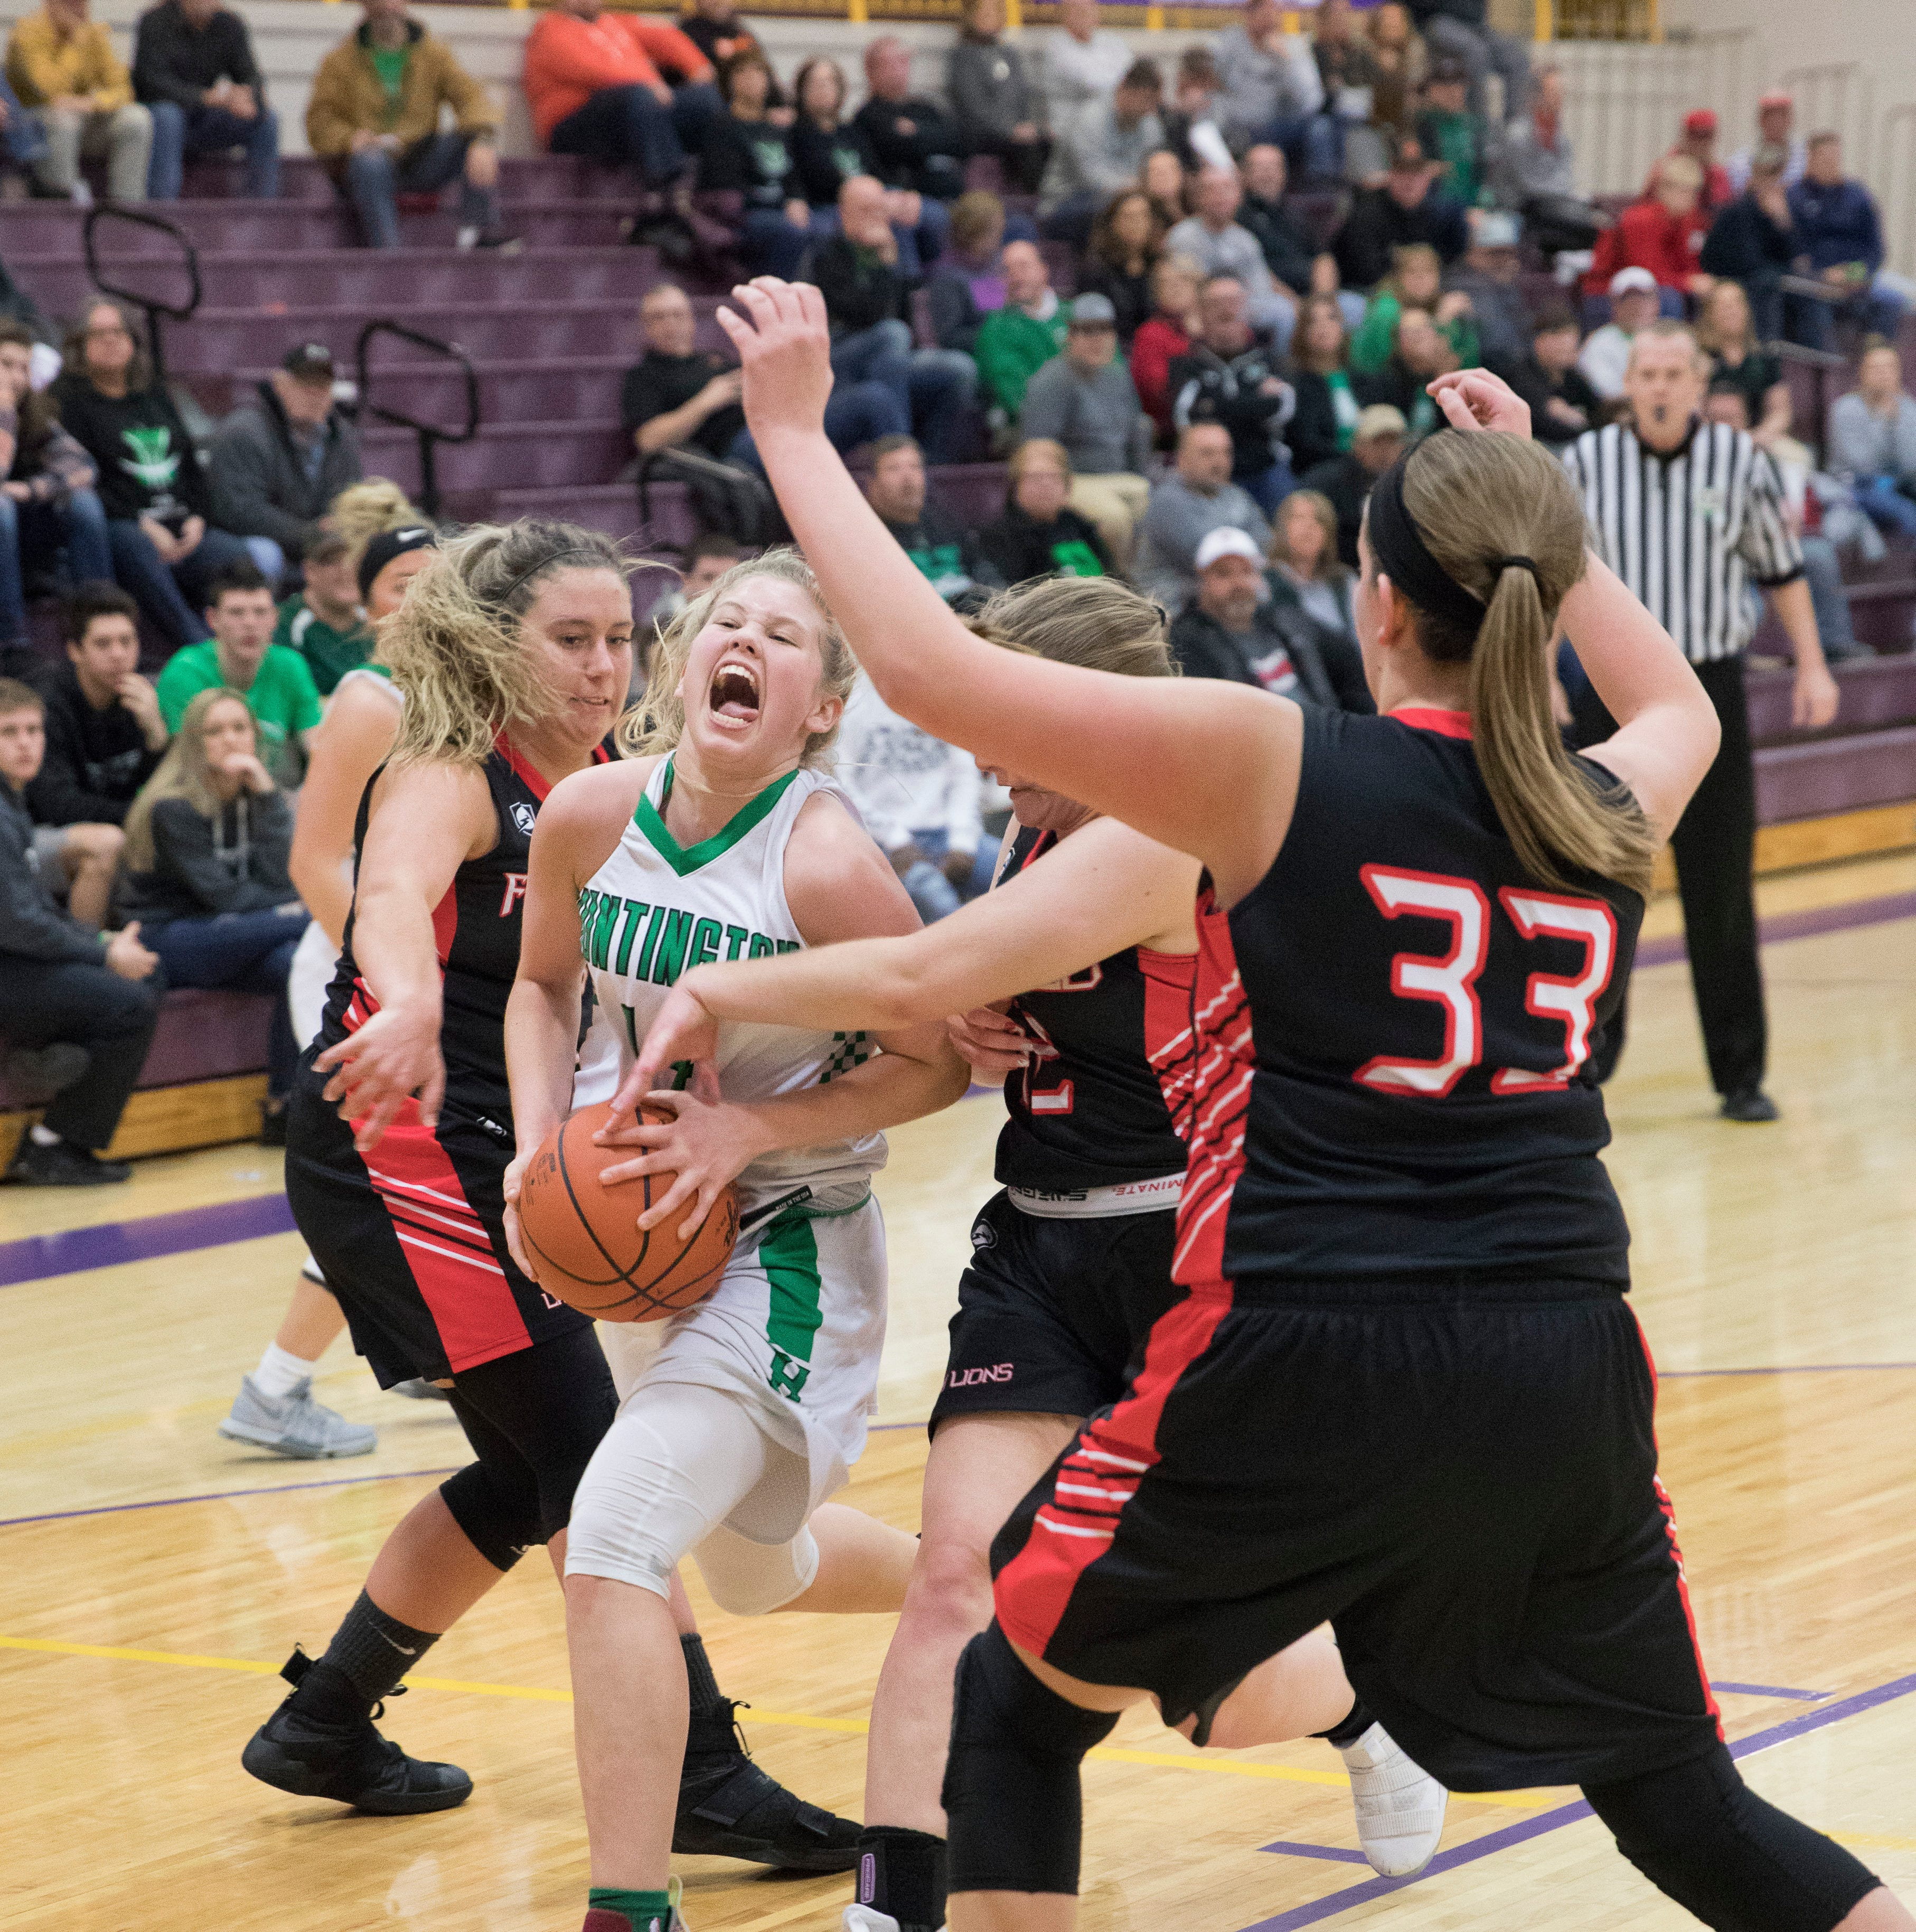 HS GIRLS BASKETBALL: Four takeaways from Huntington's sectional win over Fairfield